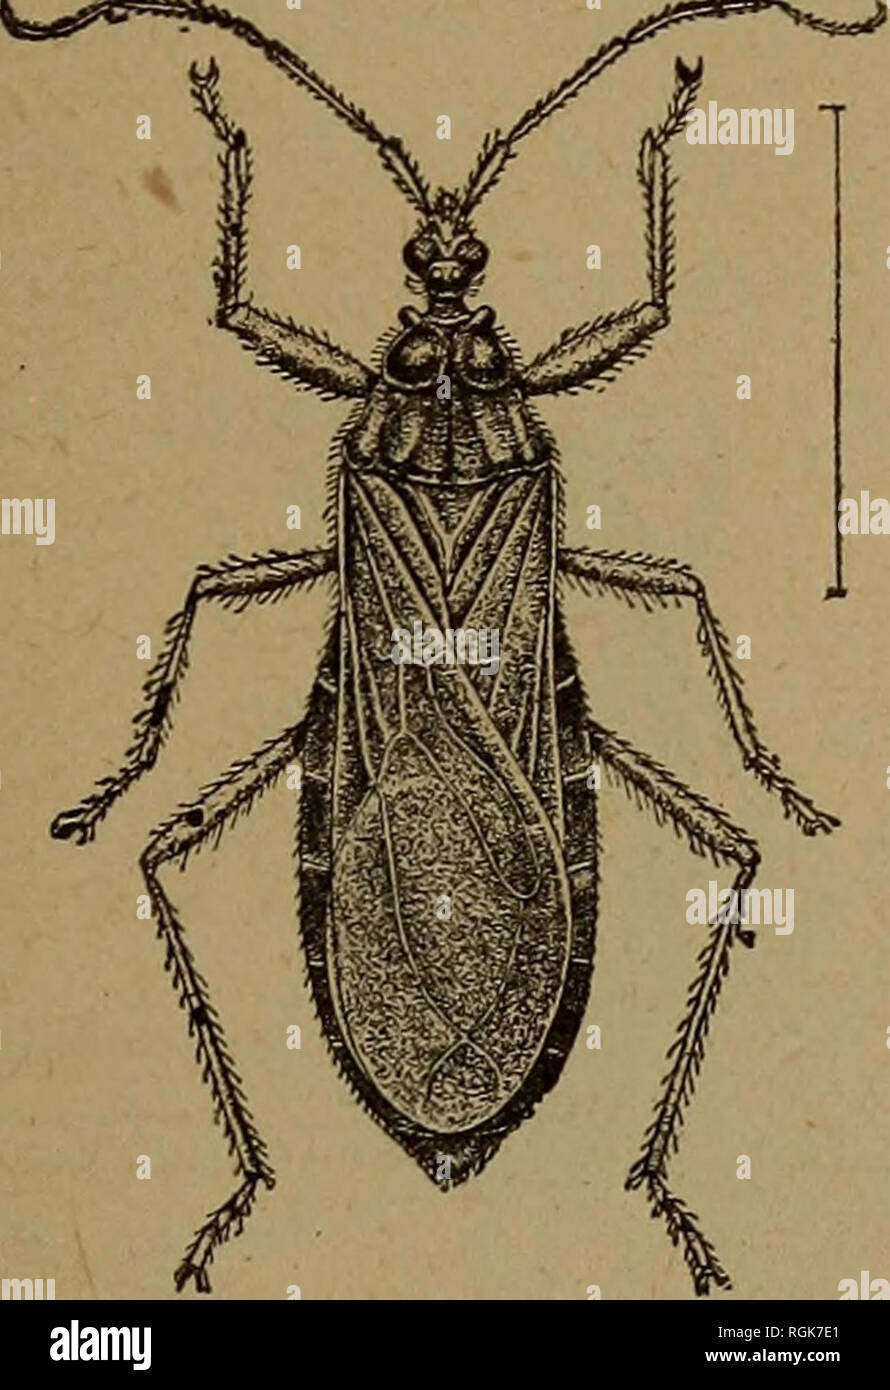 Beetles Insects Stockfotos Beetles Insects Bilder Seite 8 Alamy